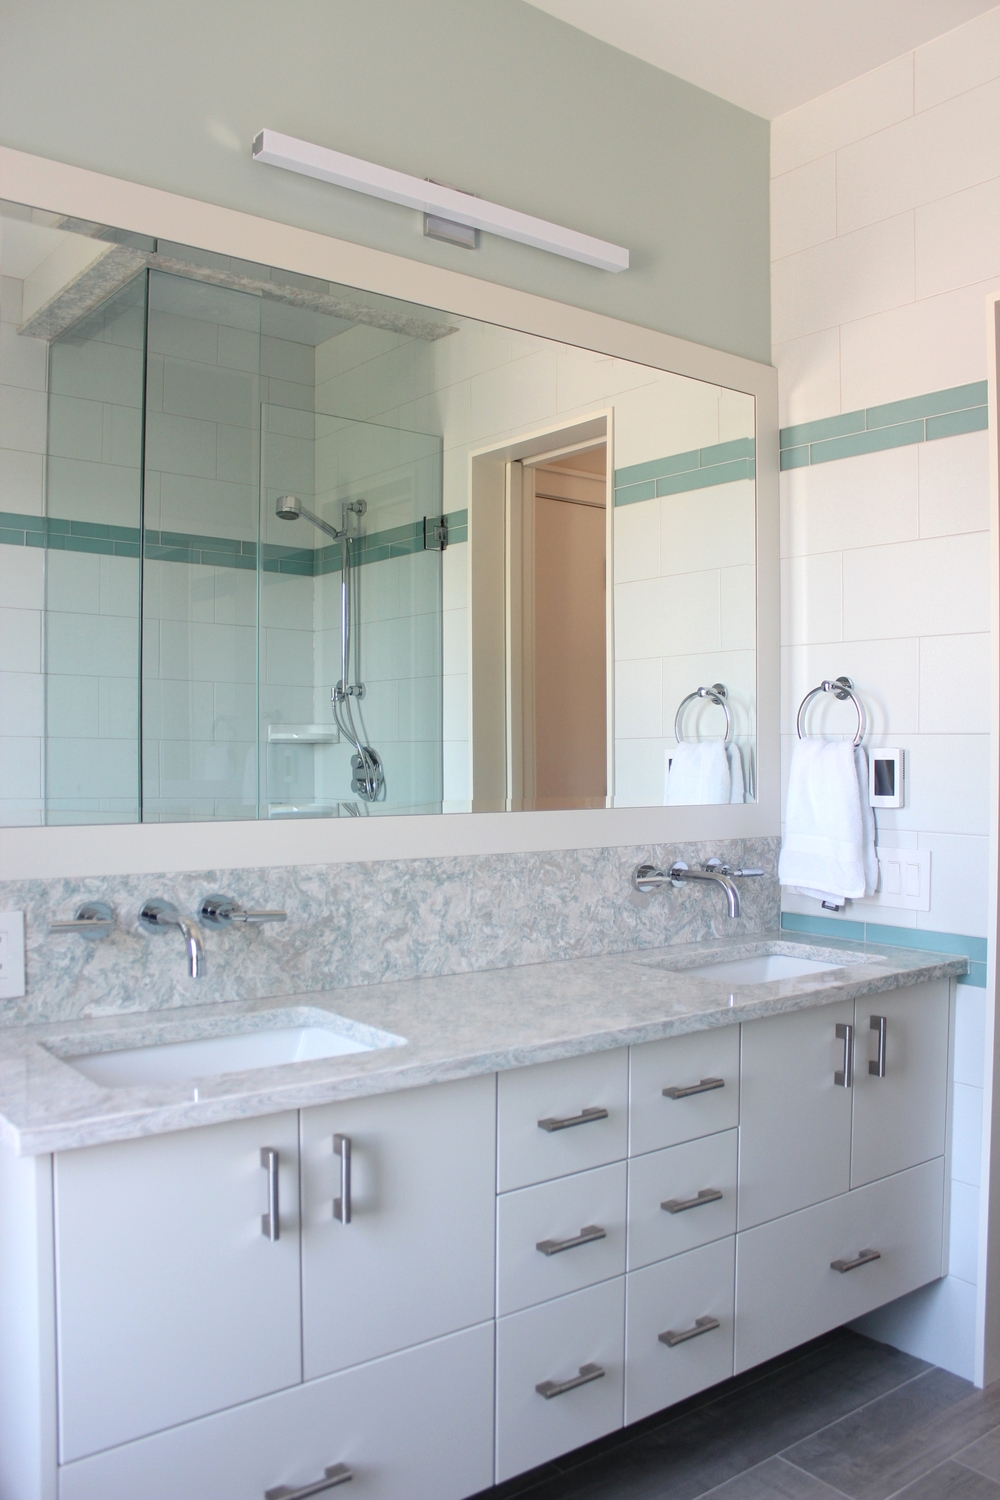 Kids bath with modern cabinets, a HUGE custom mirror and Cambria countertop and backsplash to tie it all together.